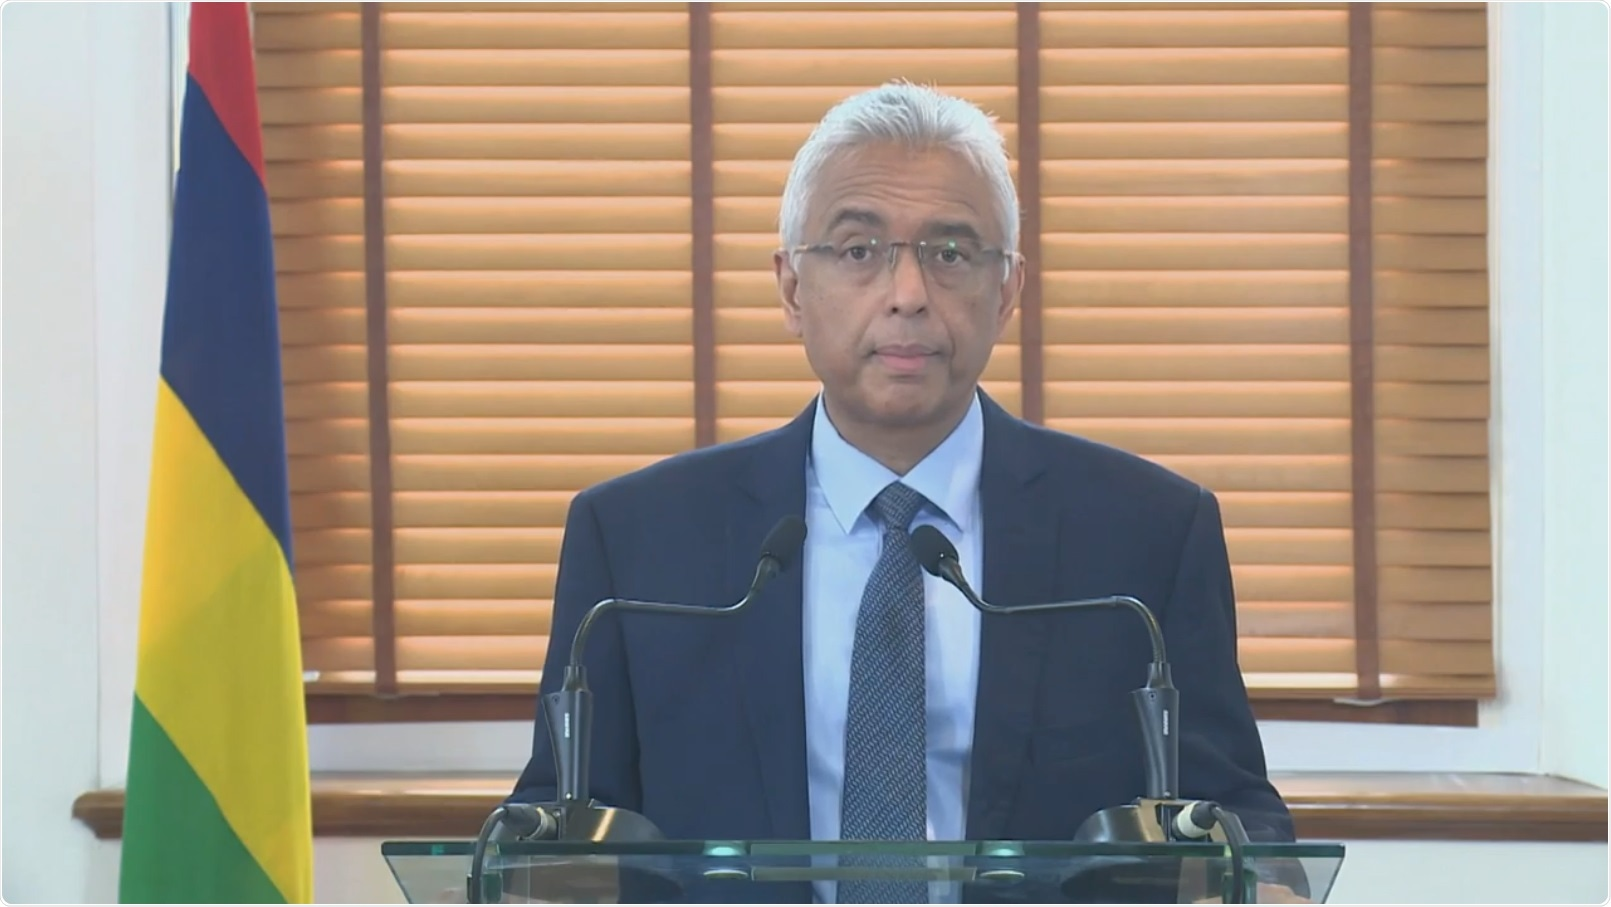 Mauritian Prime Minister calls upon world leaders to ensure fair distribution of Covid-19 vaccines